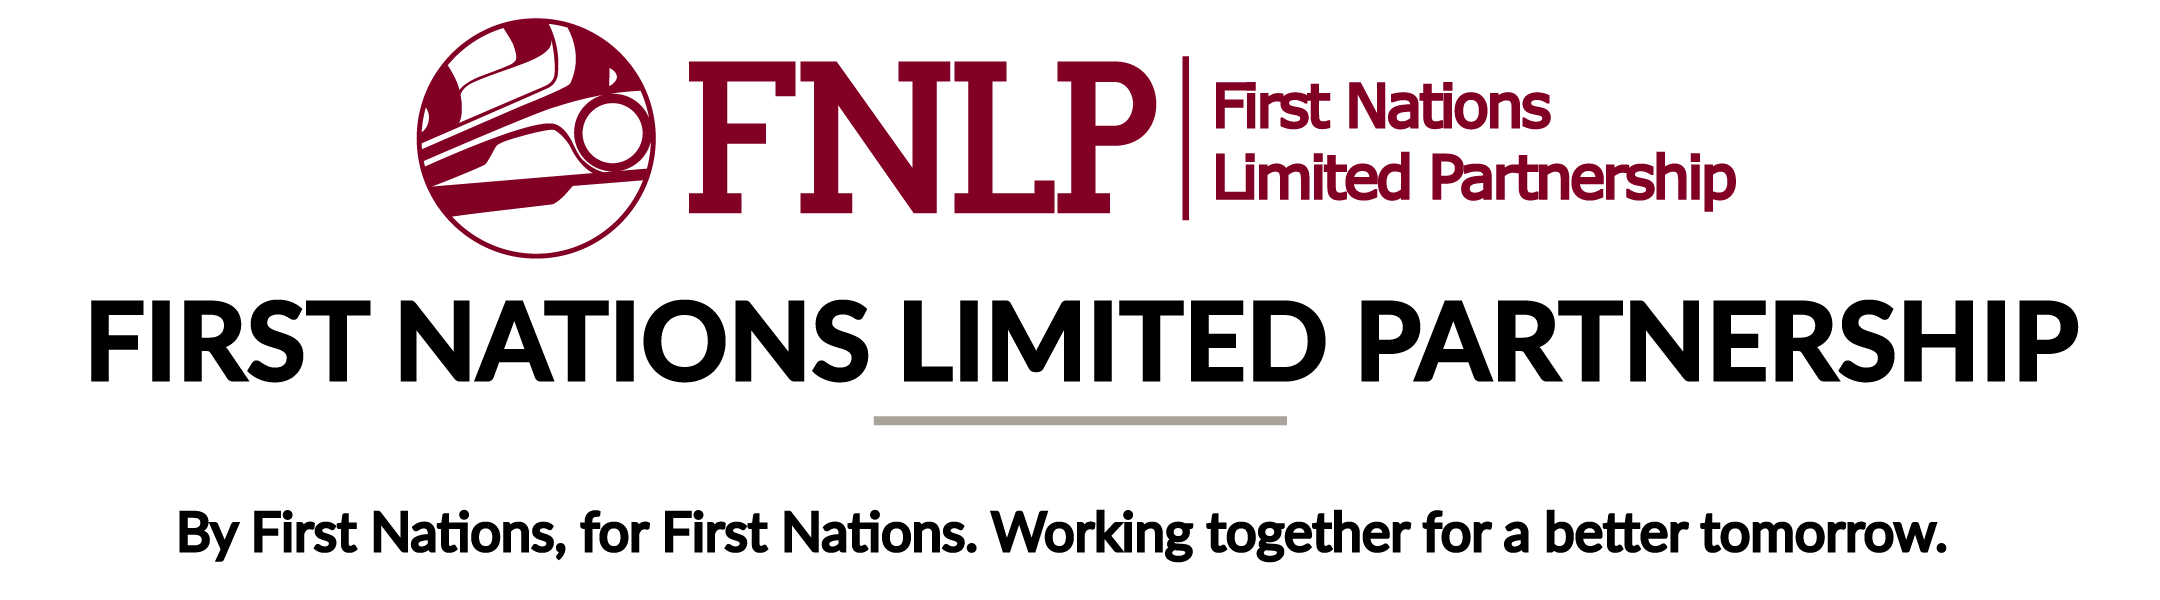 First Nations Limited Partnership